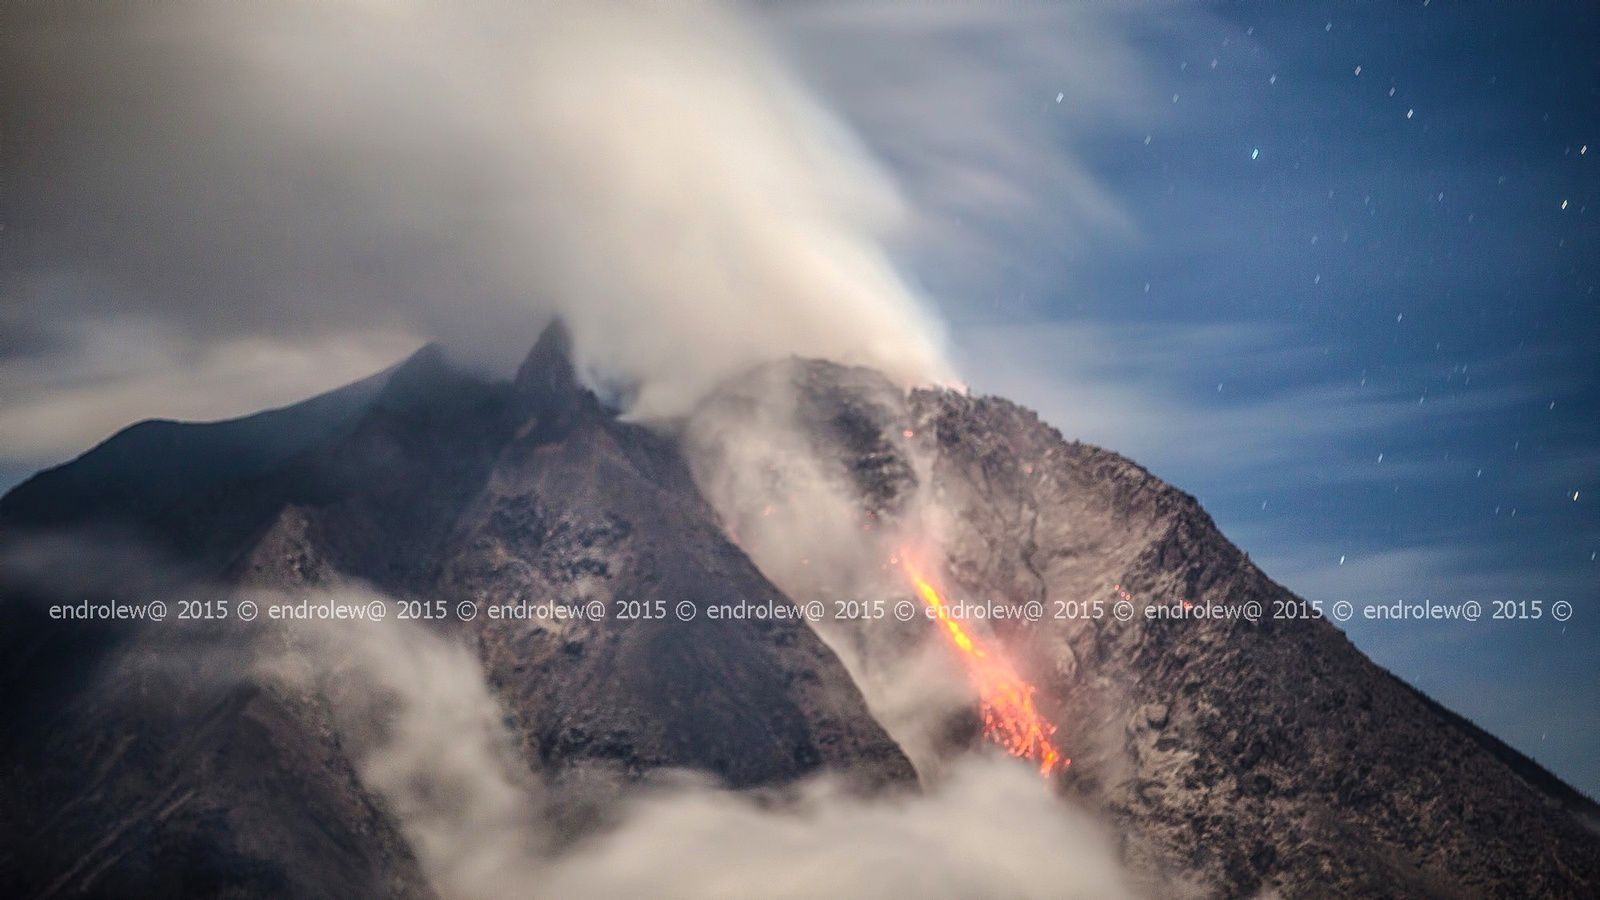 Sinabung - 01.04.2015 / 22h34 - lobe de lave - photo endrolew@